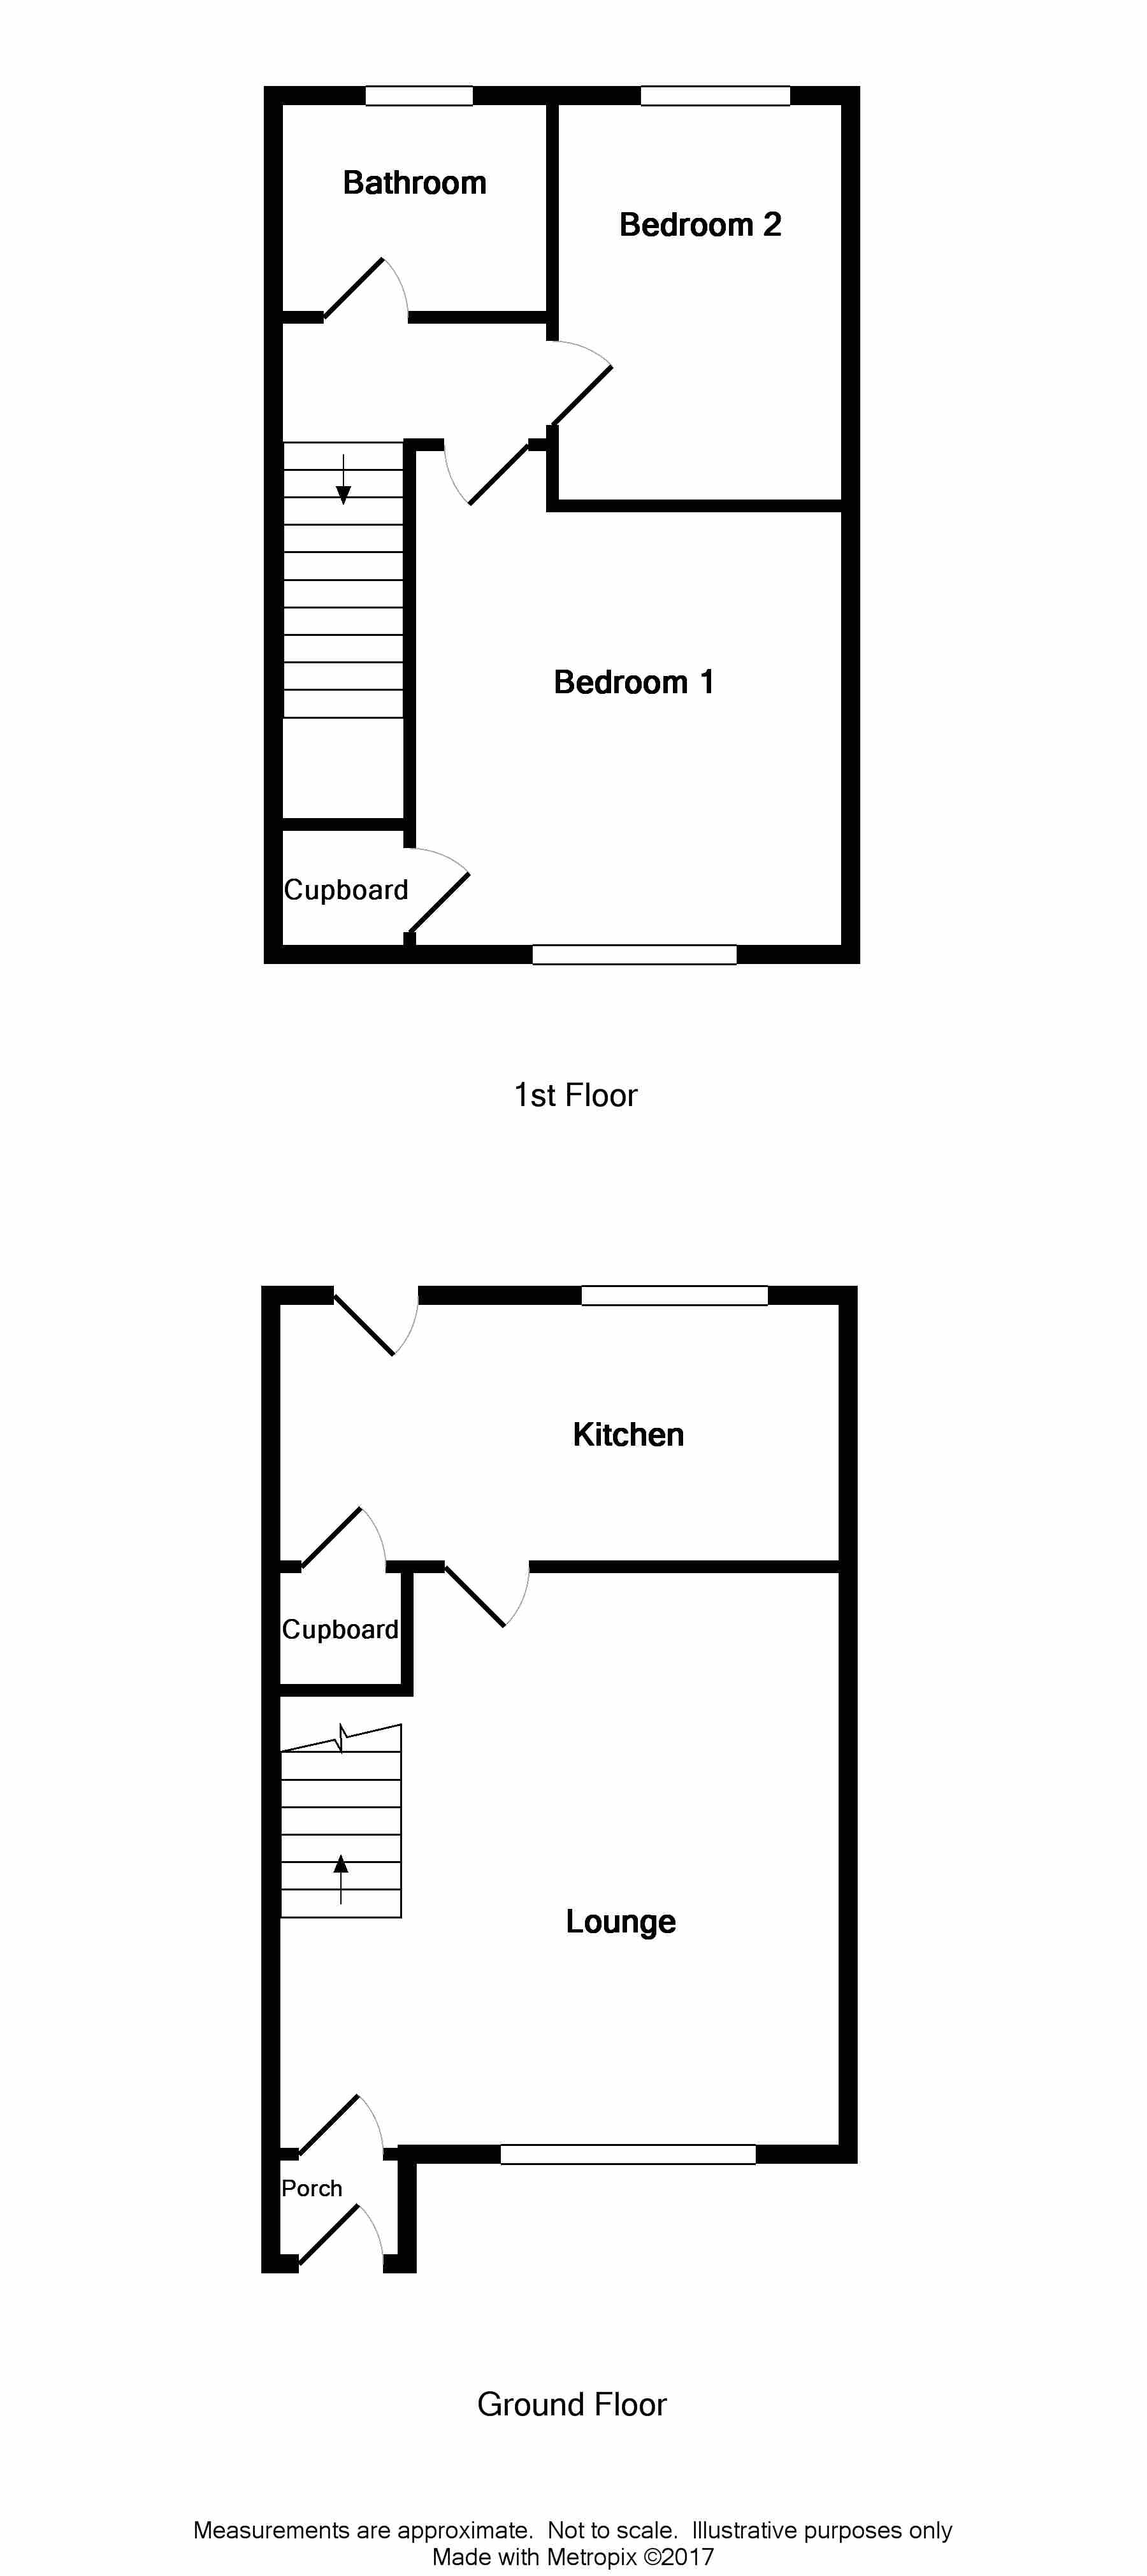 Floor Plan for 9 McCormack Gardens